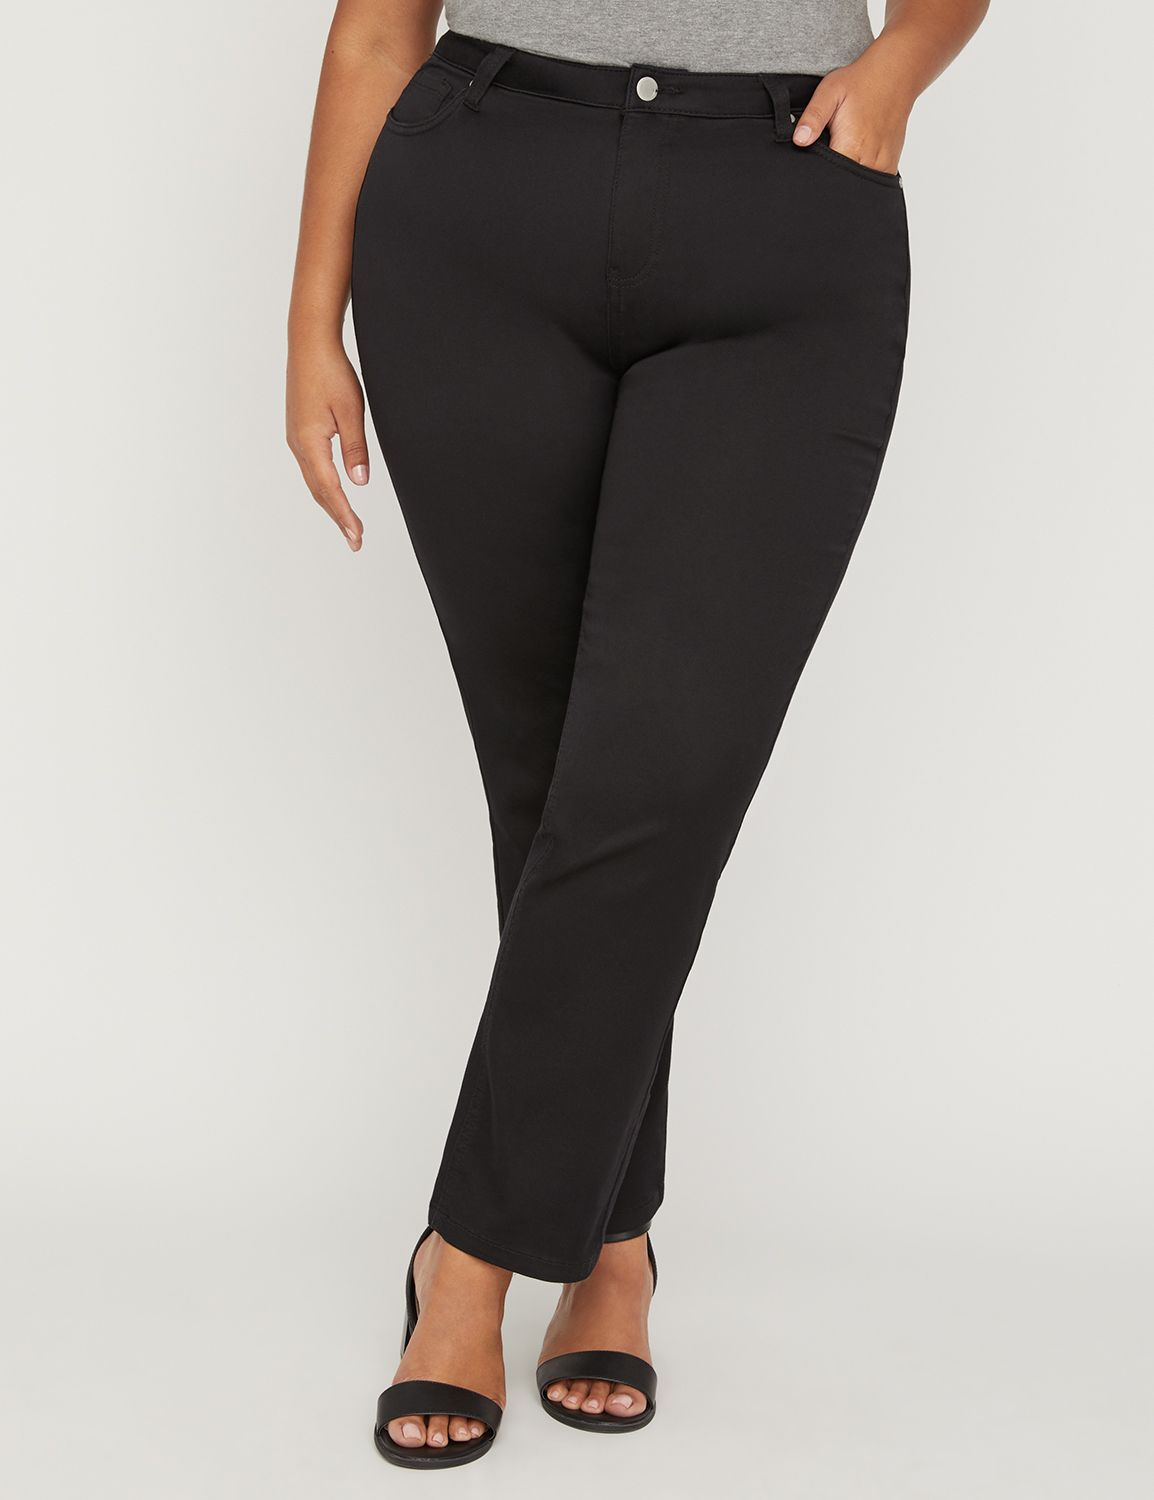 Modern Sateen Stretch Pant Done MP-300083358